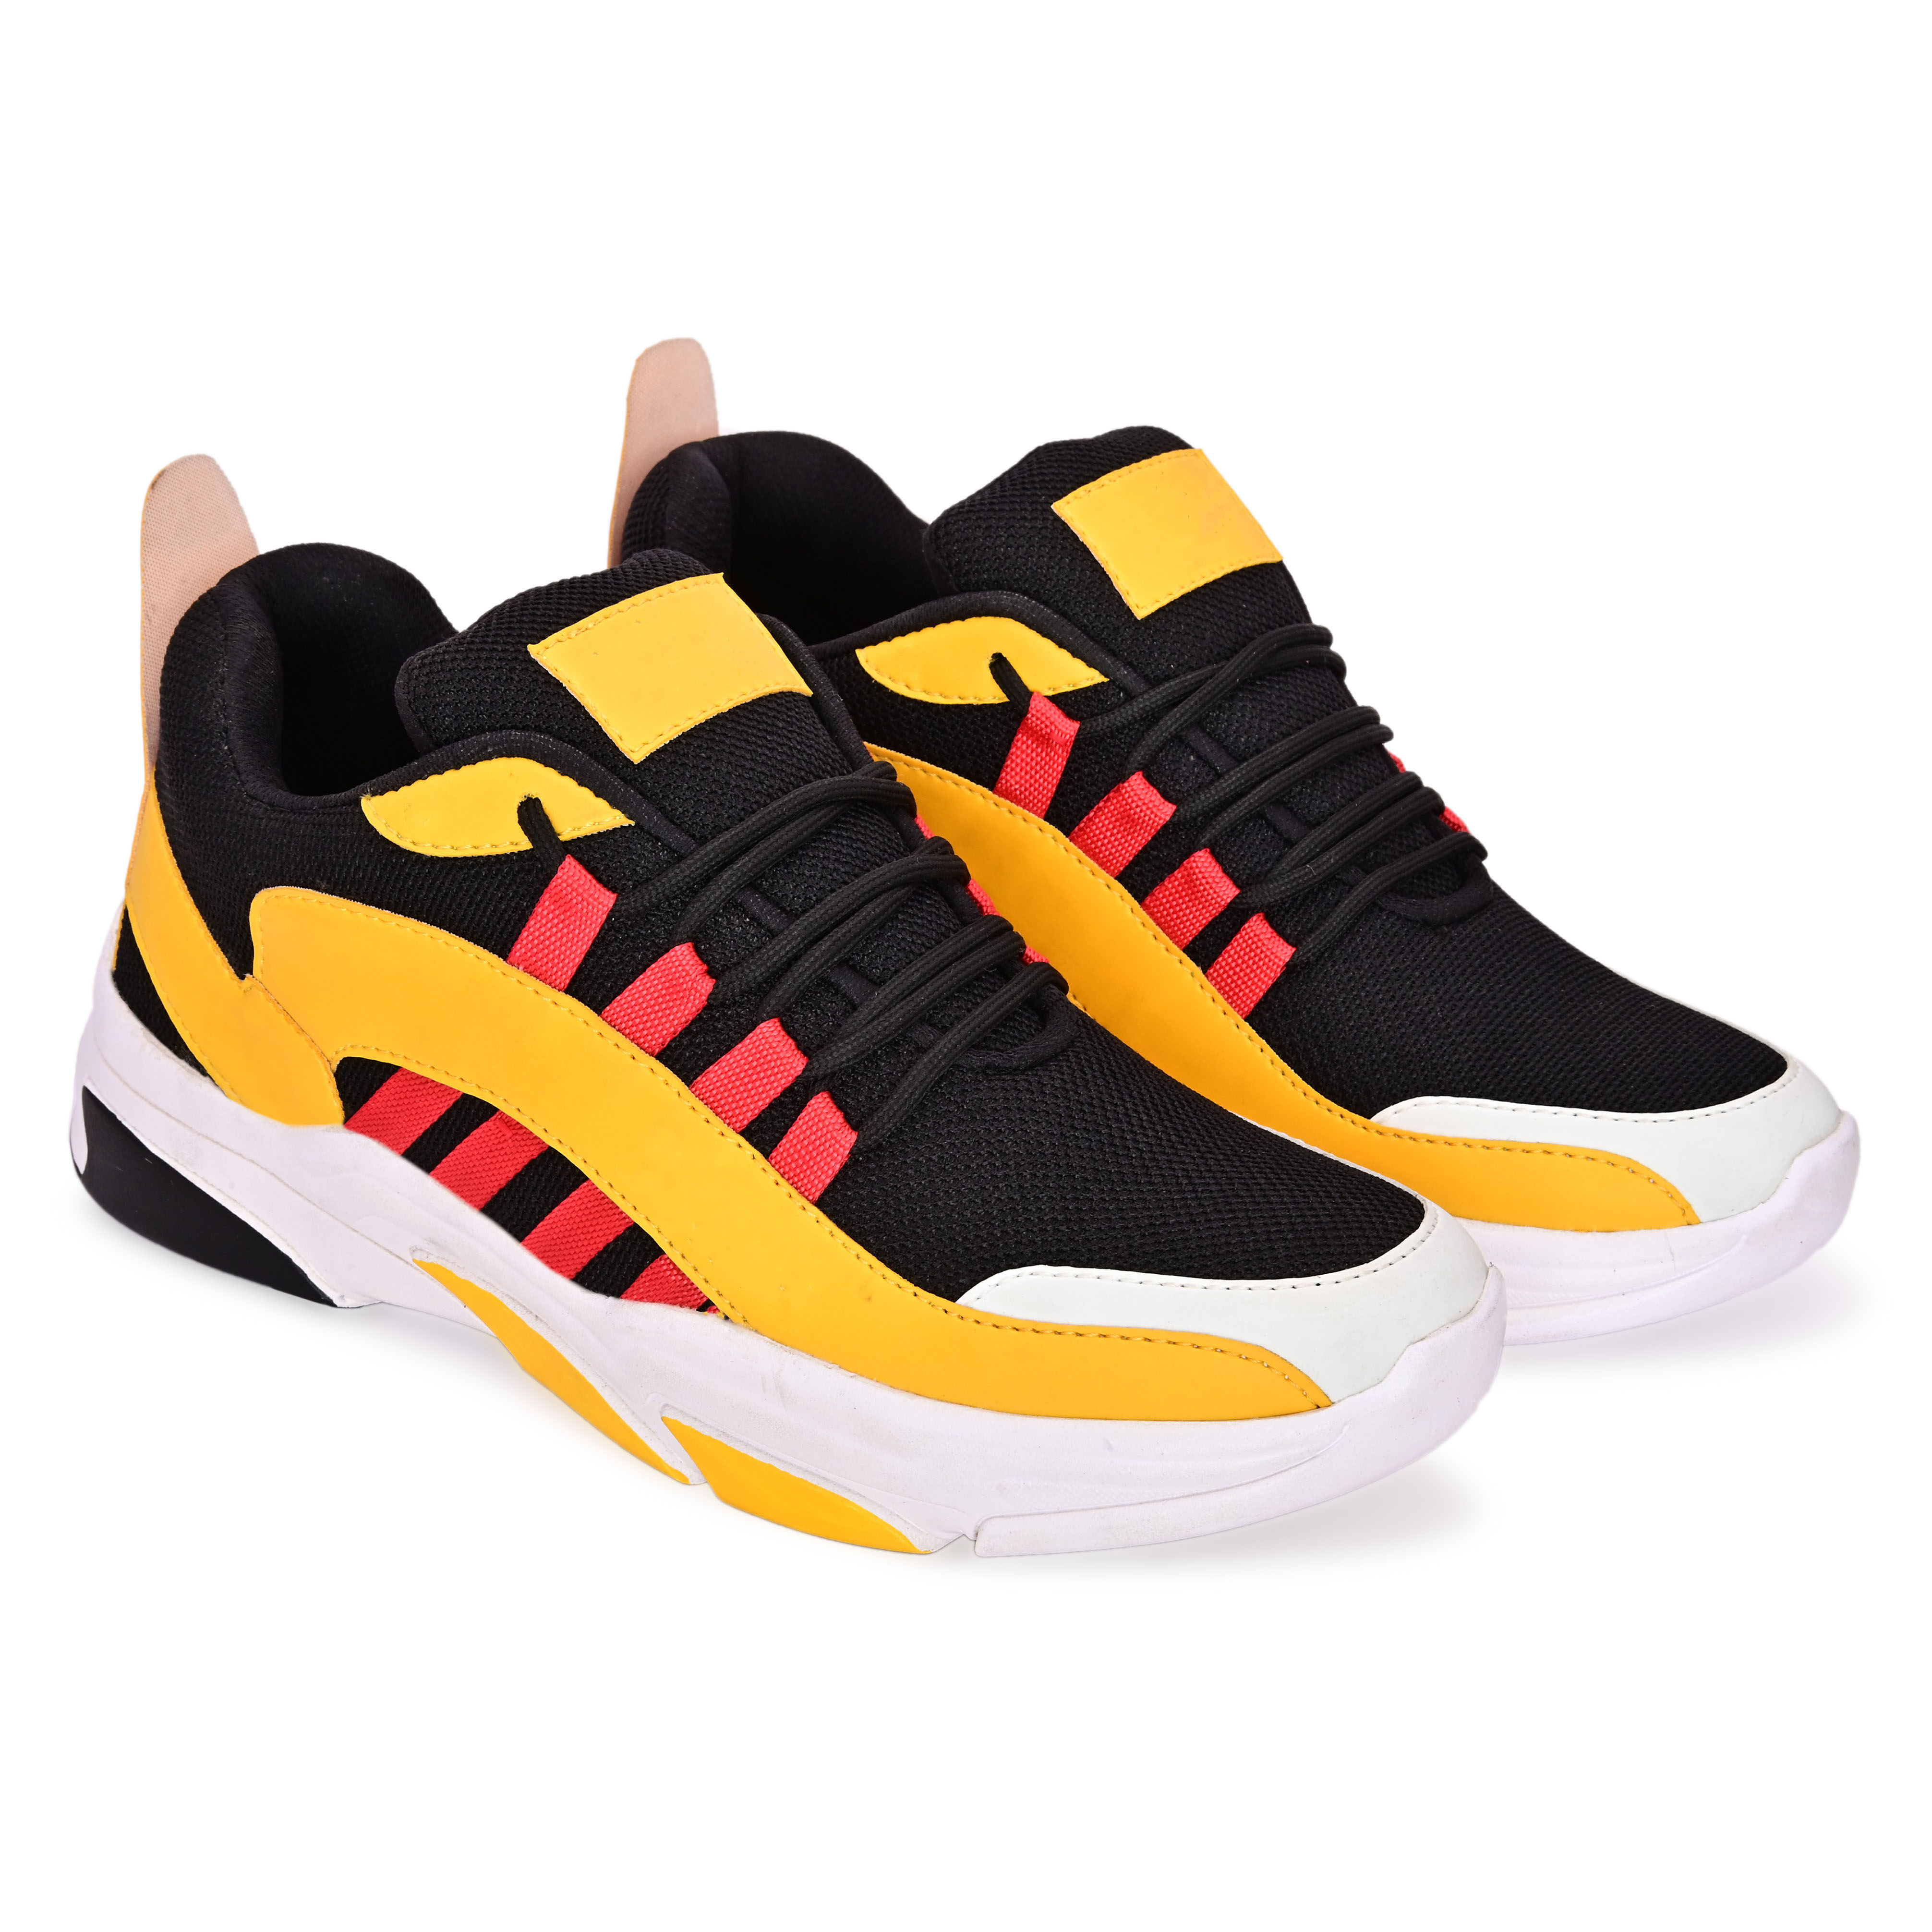 BRIFAR COMFORTABLE & TRENDY SPORTS SHOES ARE RELIABLE FOR ANY BFS0798YL1 (7-10, YELLOW, 4 PAIR)